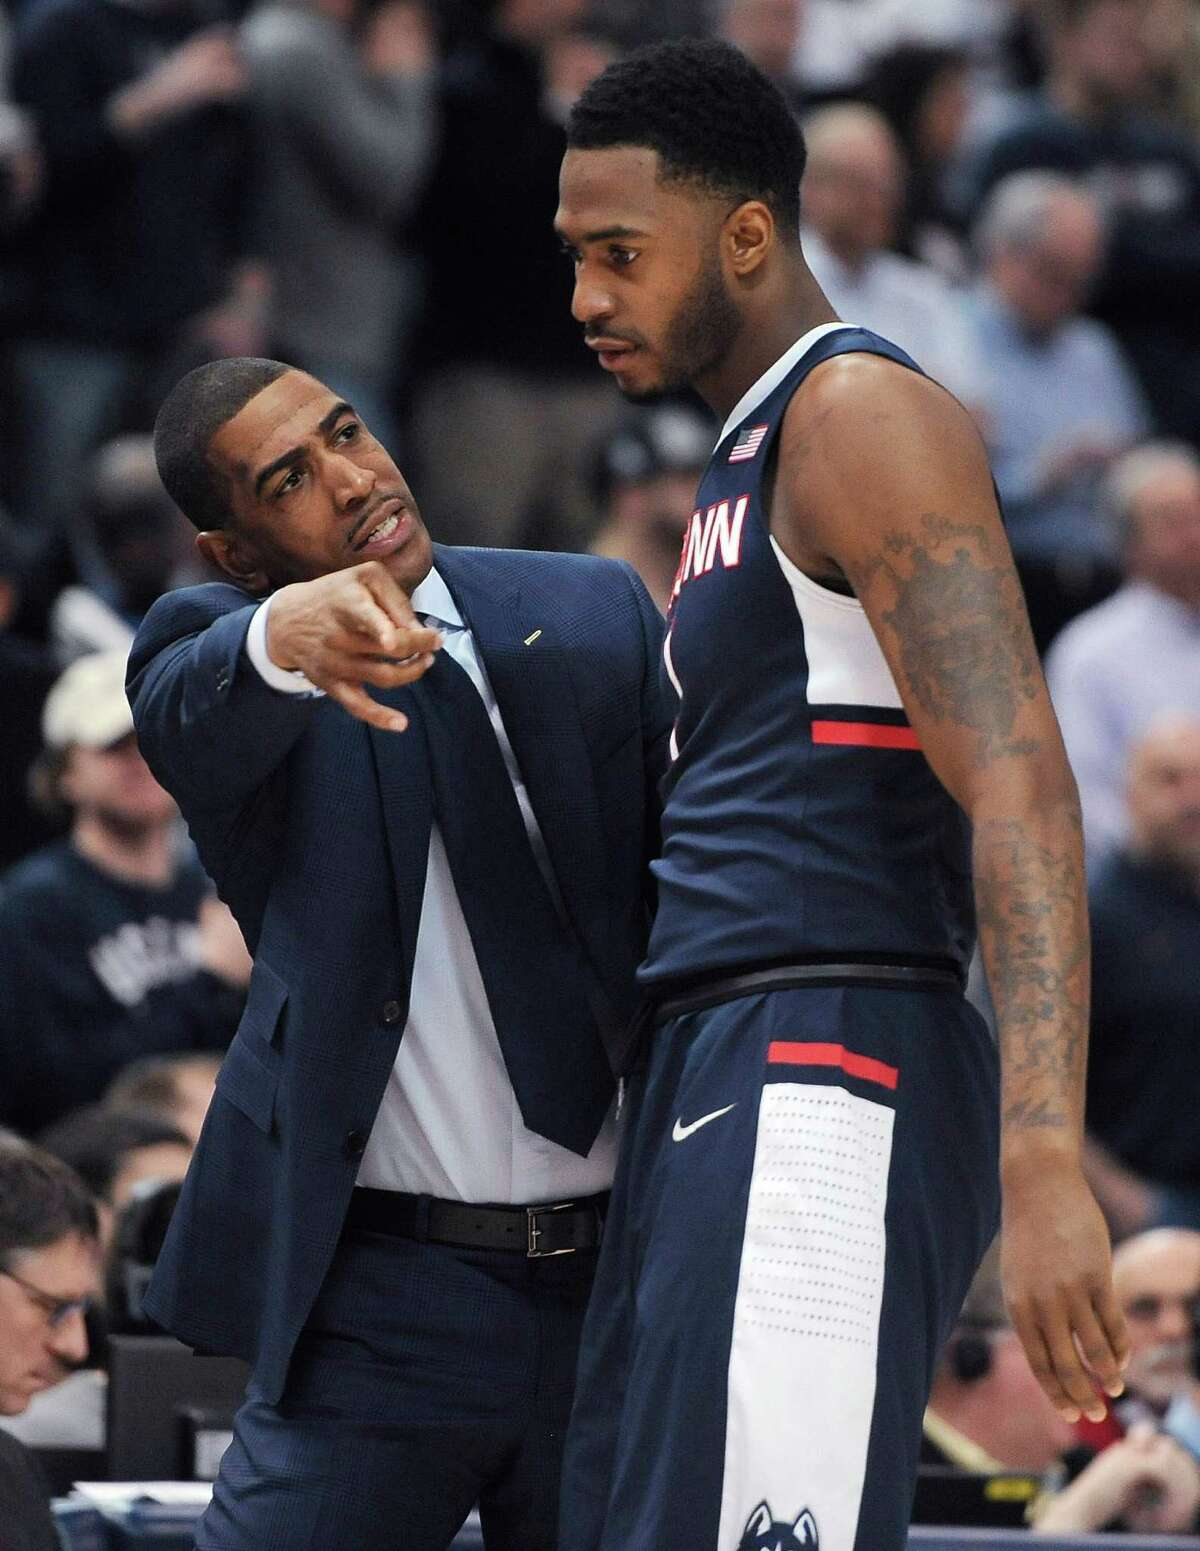 Connecticut coach Kevin Ollie talks with Phillip Nolan during the first half of an NCAA college basketball game against Cincinnati in the quarterfinals of the American Athletic Conference tournament, Friday, March 13, 2015, in Hartford, Conn.